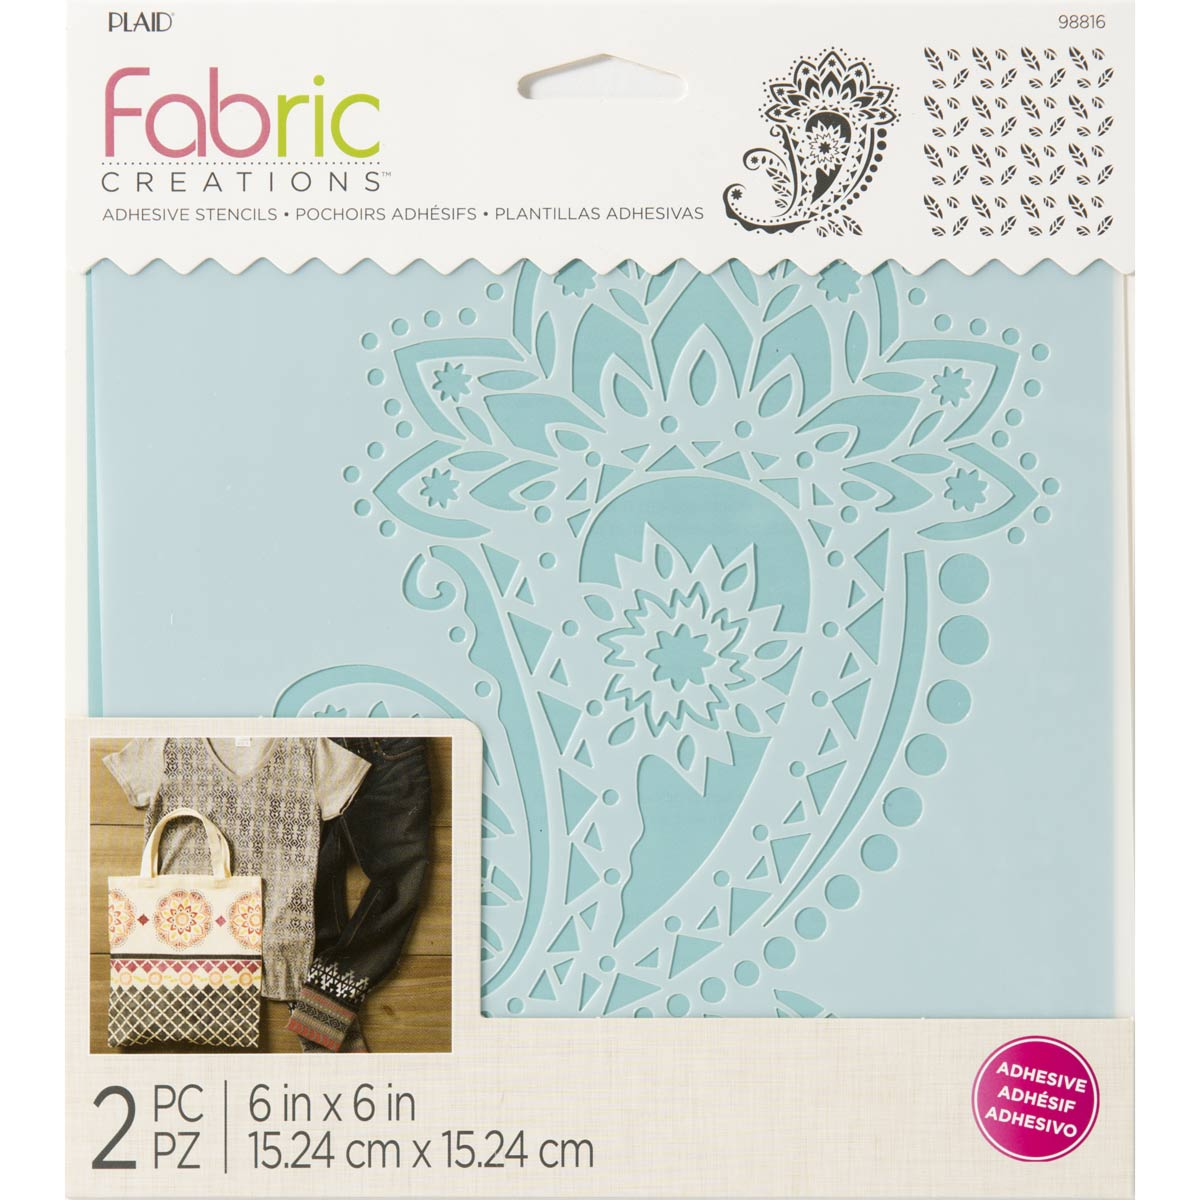 Fabric Creations™ Adhesive Stencils - Paisley, 6